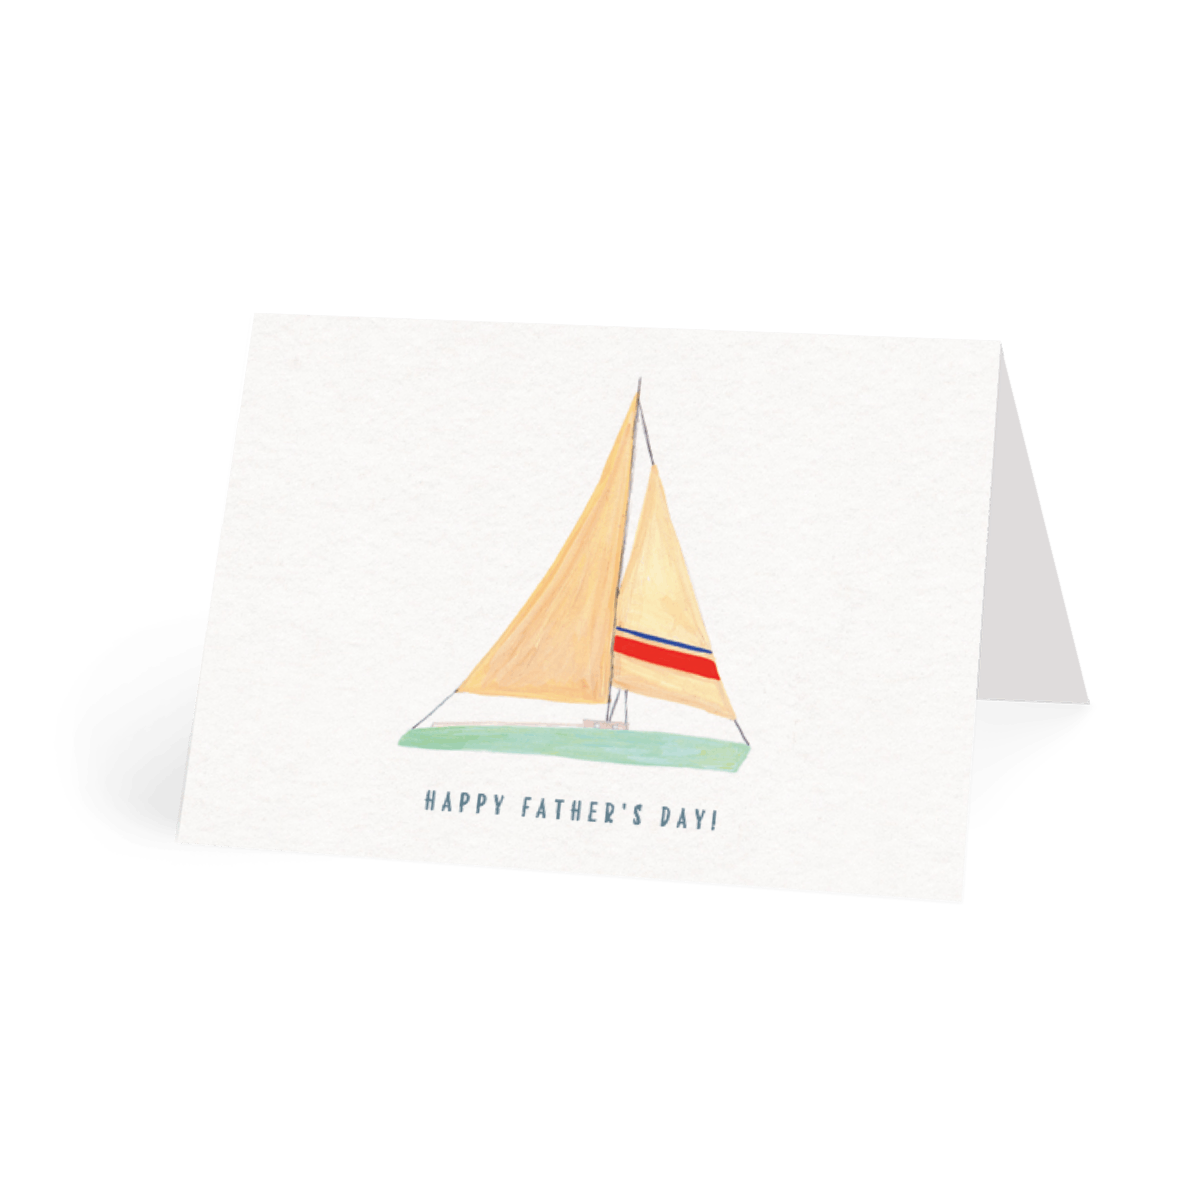 Https%3a%2f%2fwww.papier.com%2fproduct image%2f7135%2f14%2fsweet sailing 1752 front 1464188075.png?ixlib=rb 1.1